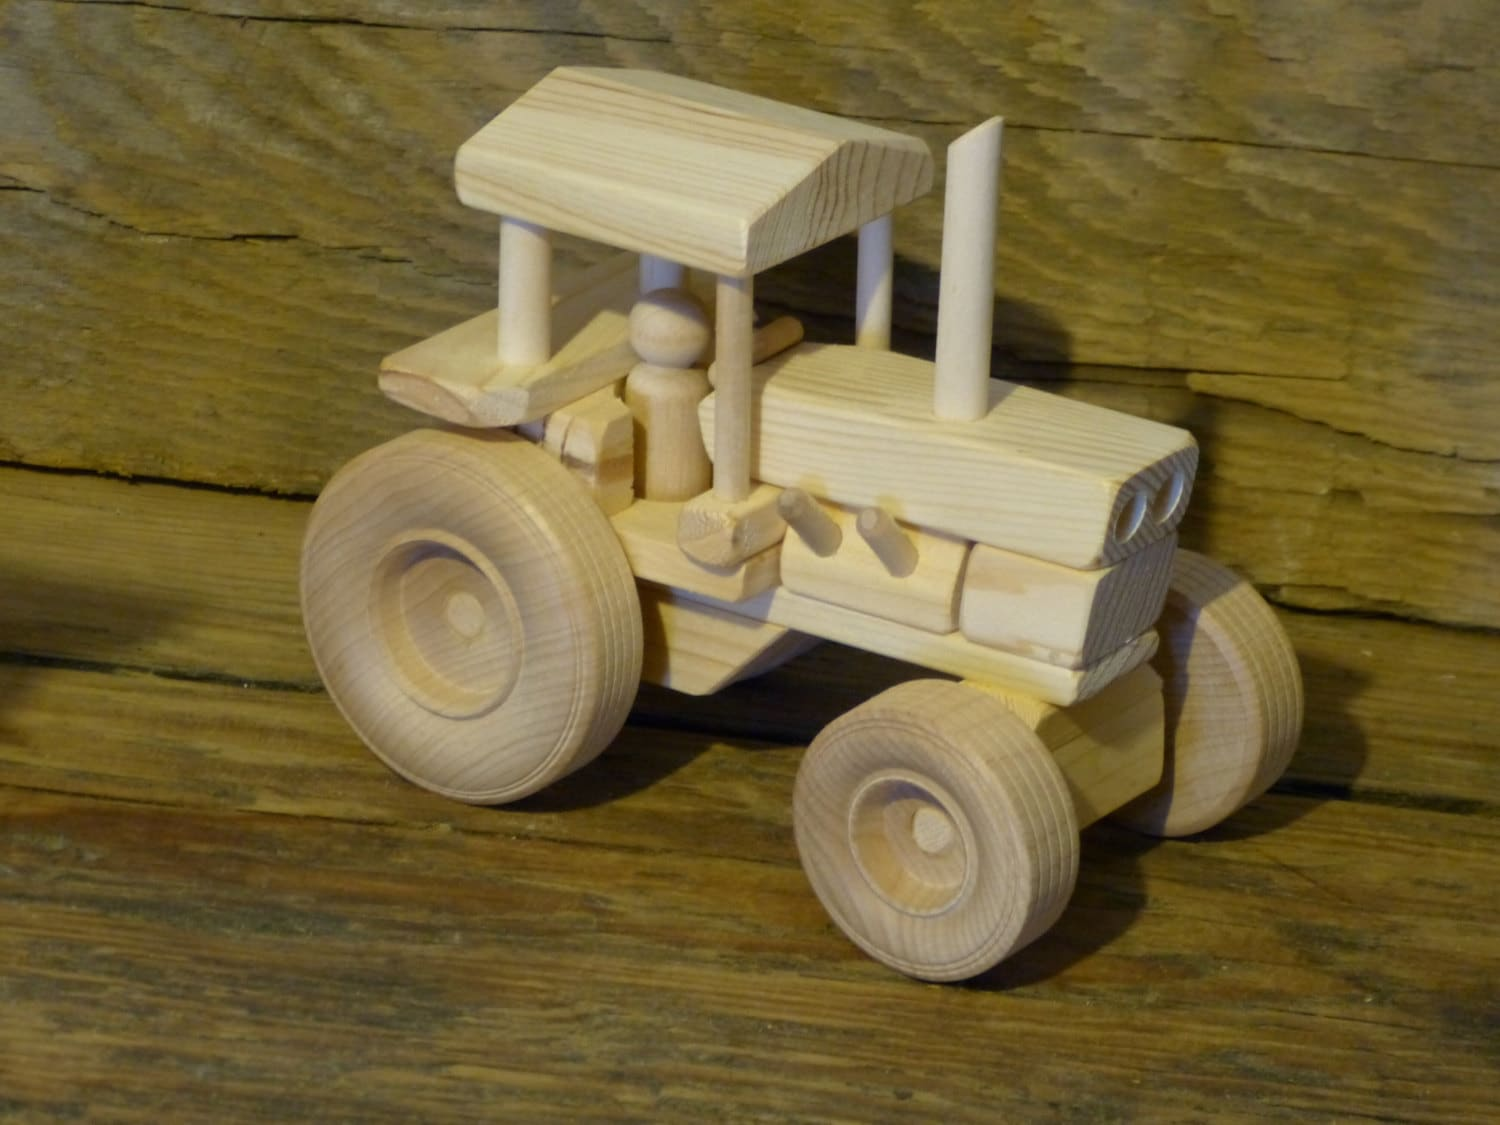 Wooden Toys For Boys : Handmade wood toy farm tractor wooden toys childs kids boys